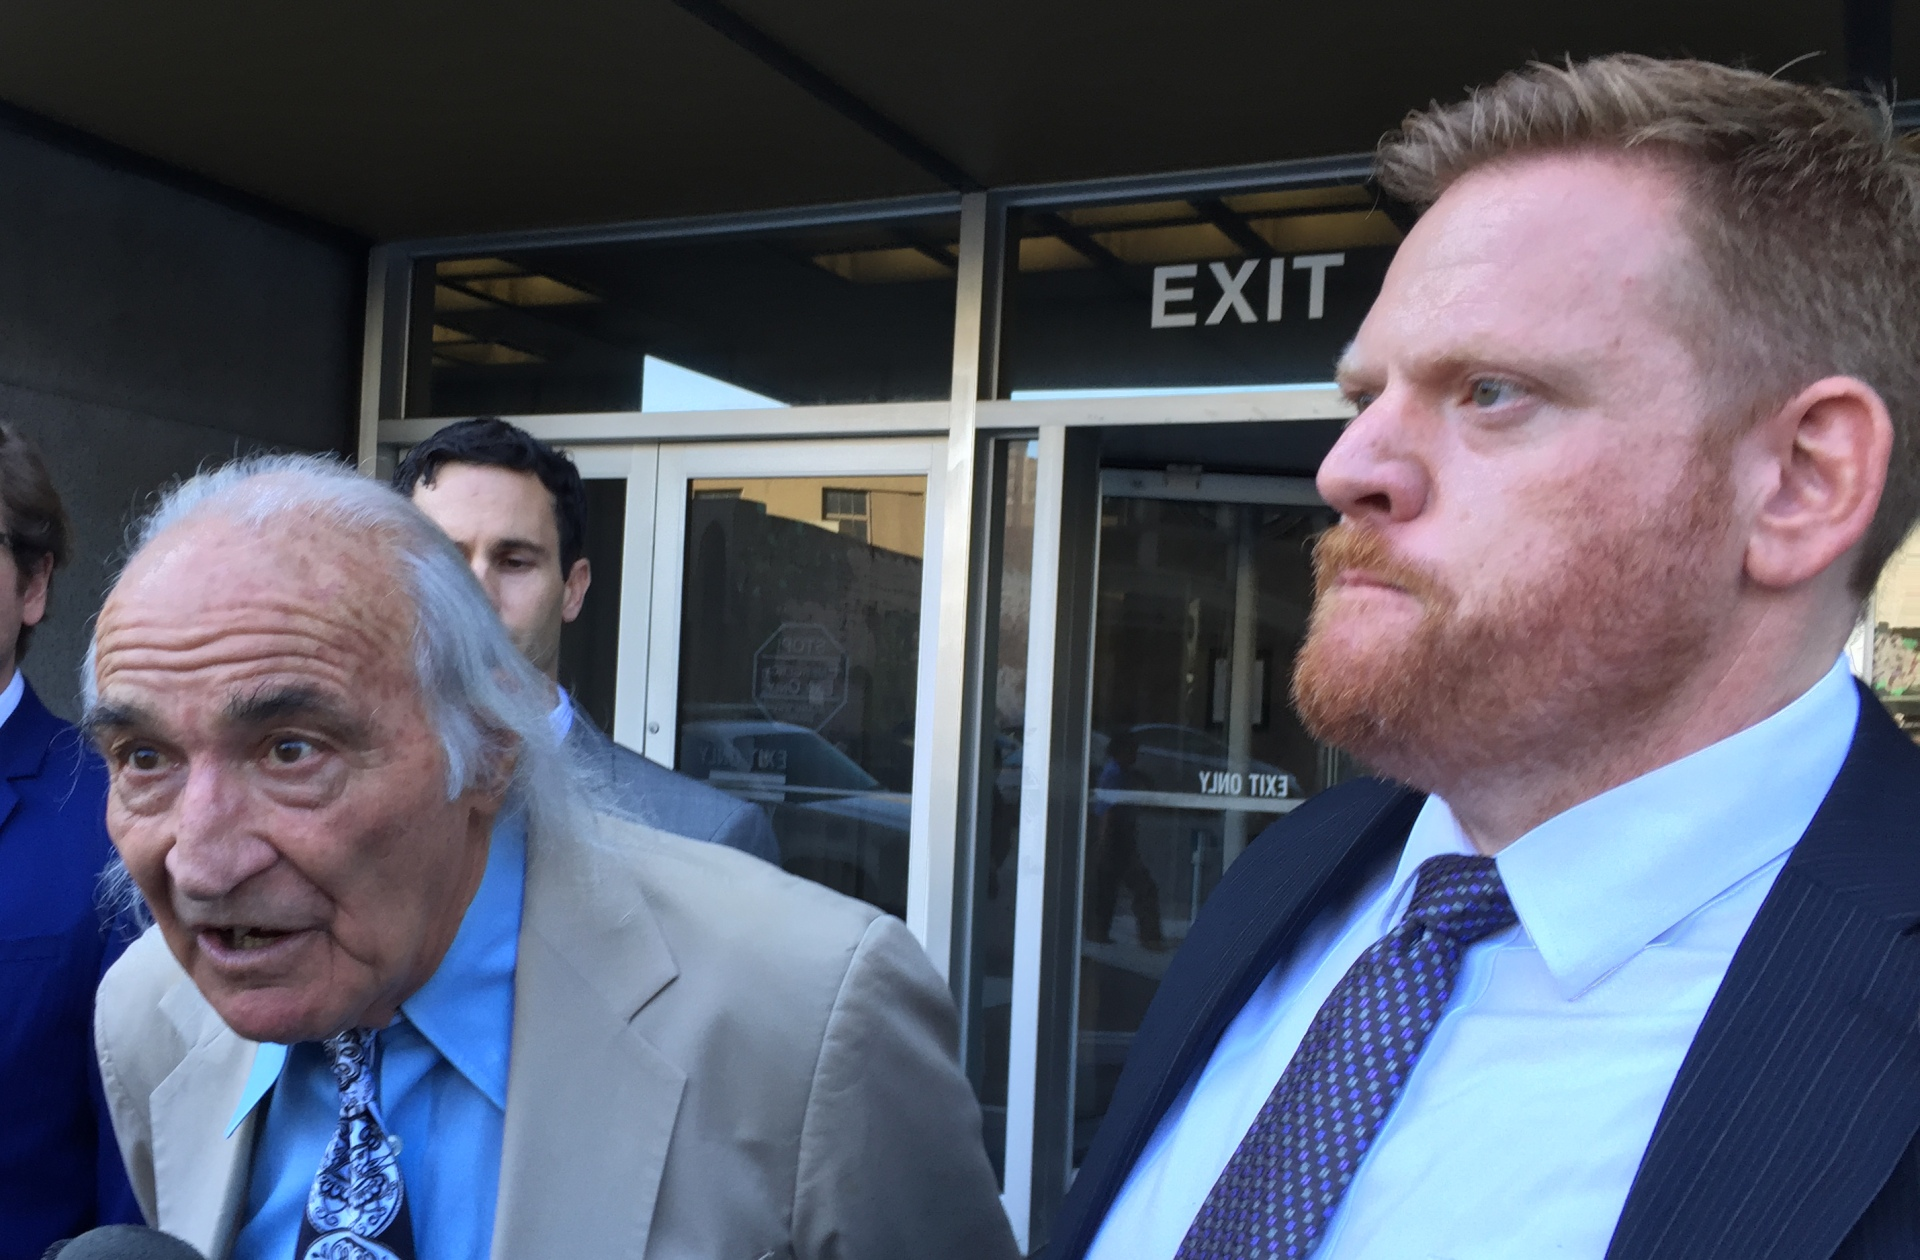 Raymond Chow's defense attorneys Tony Serra (left) and Curtis Briggs say witnesses testifying against their client in exchange for plea deals from prosecutors are not credible.